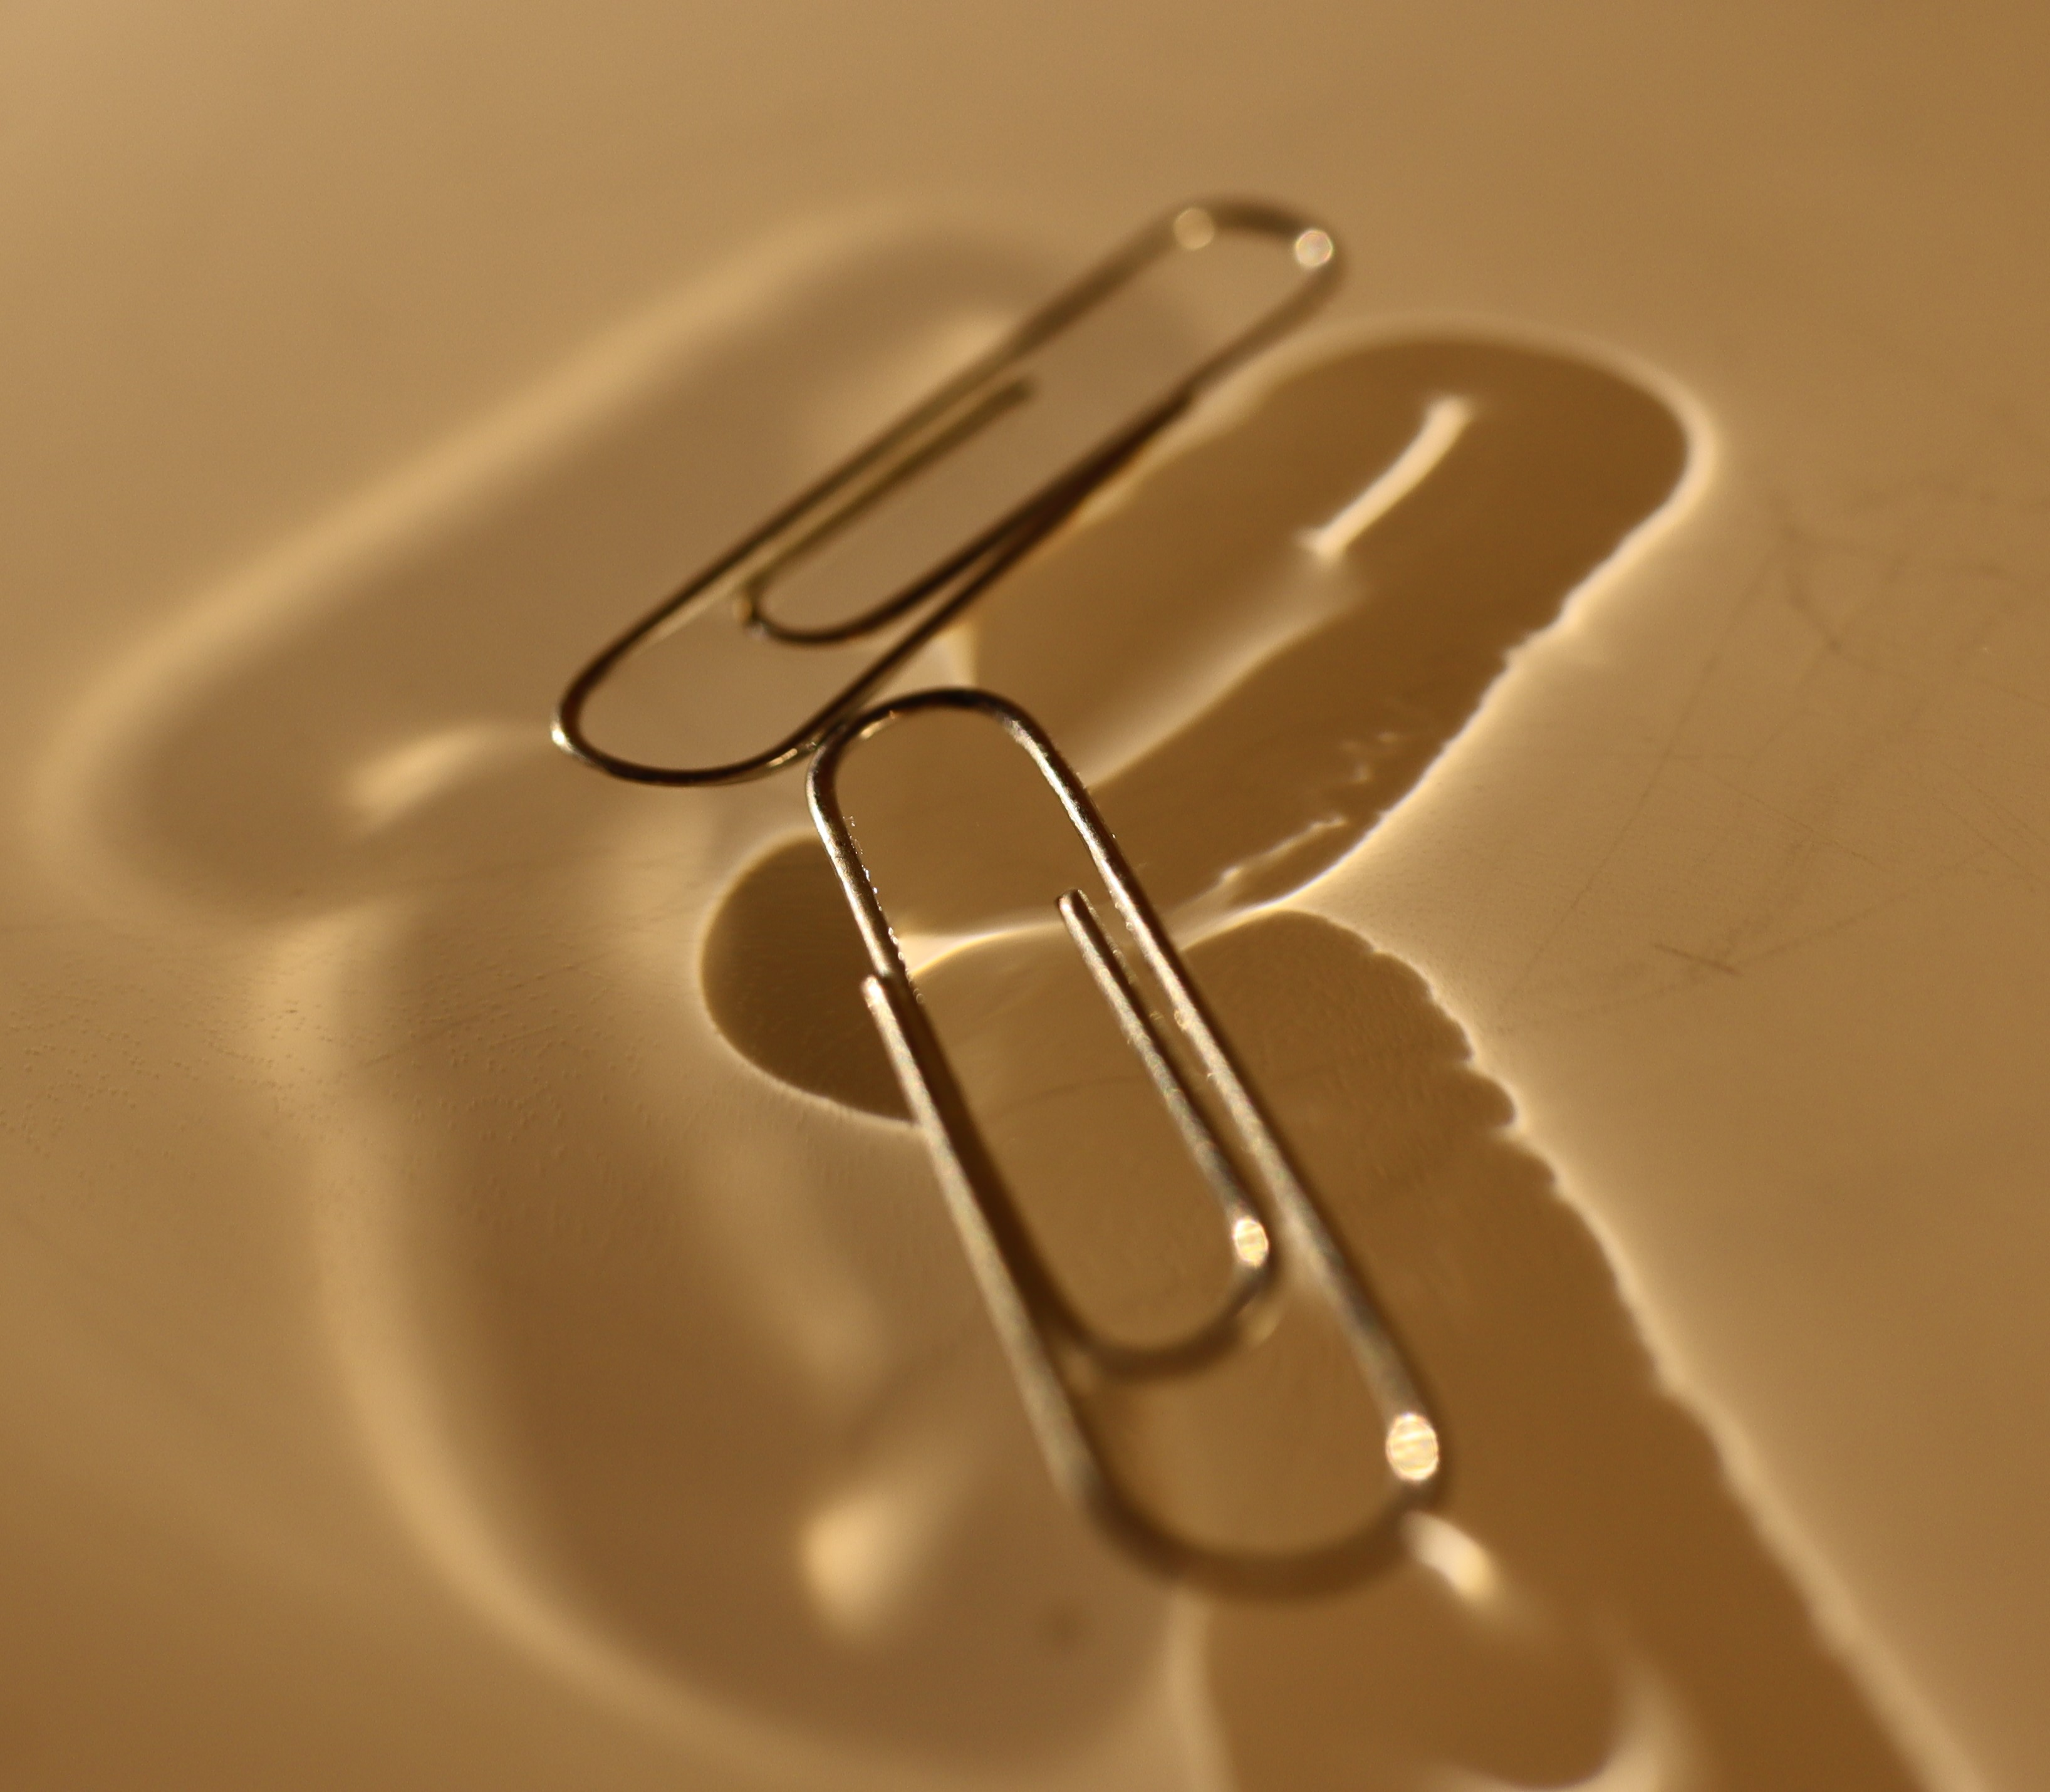 Paperclips floating